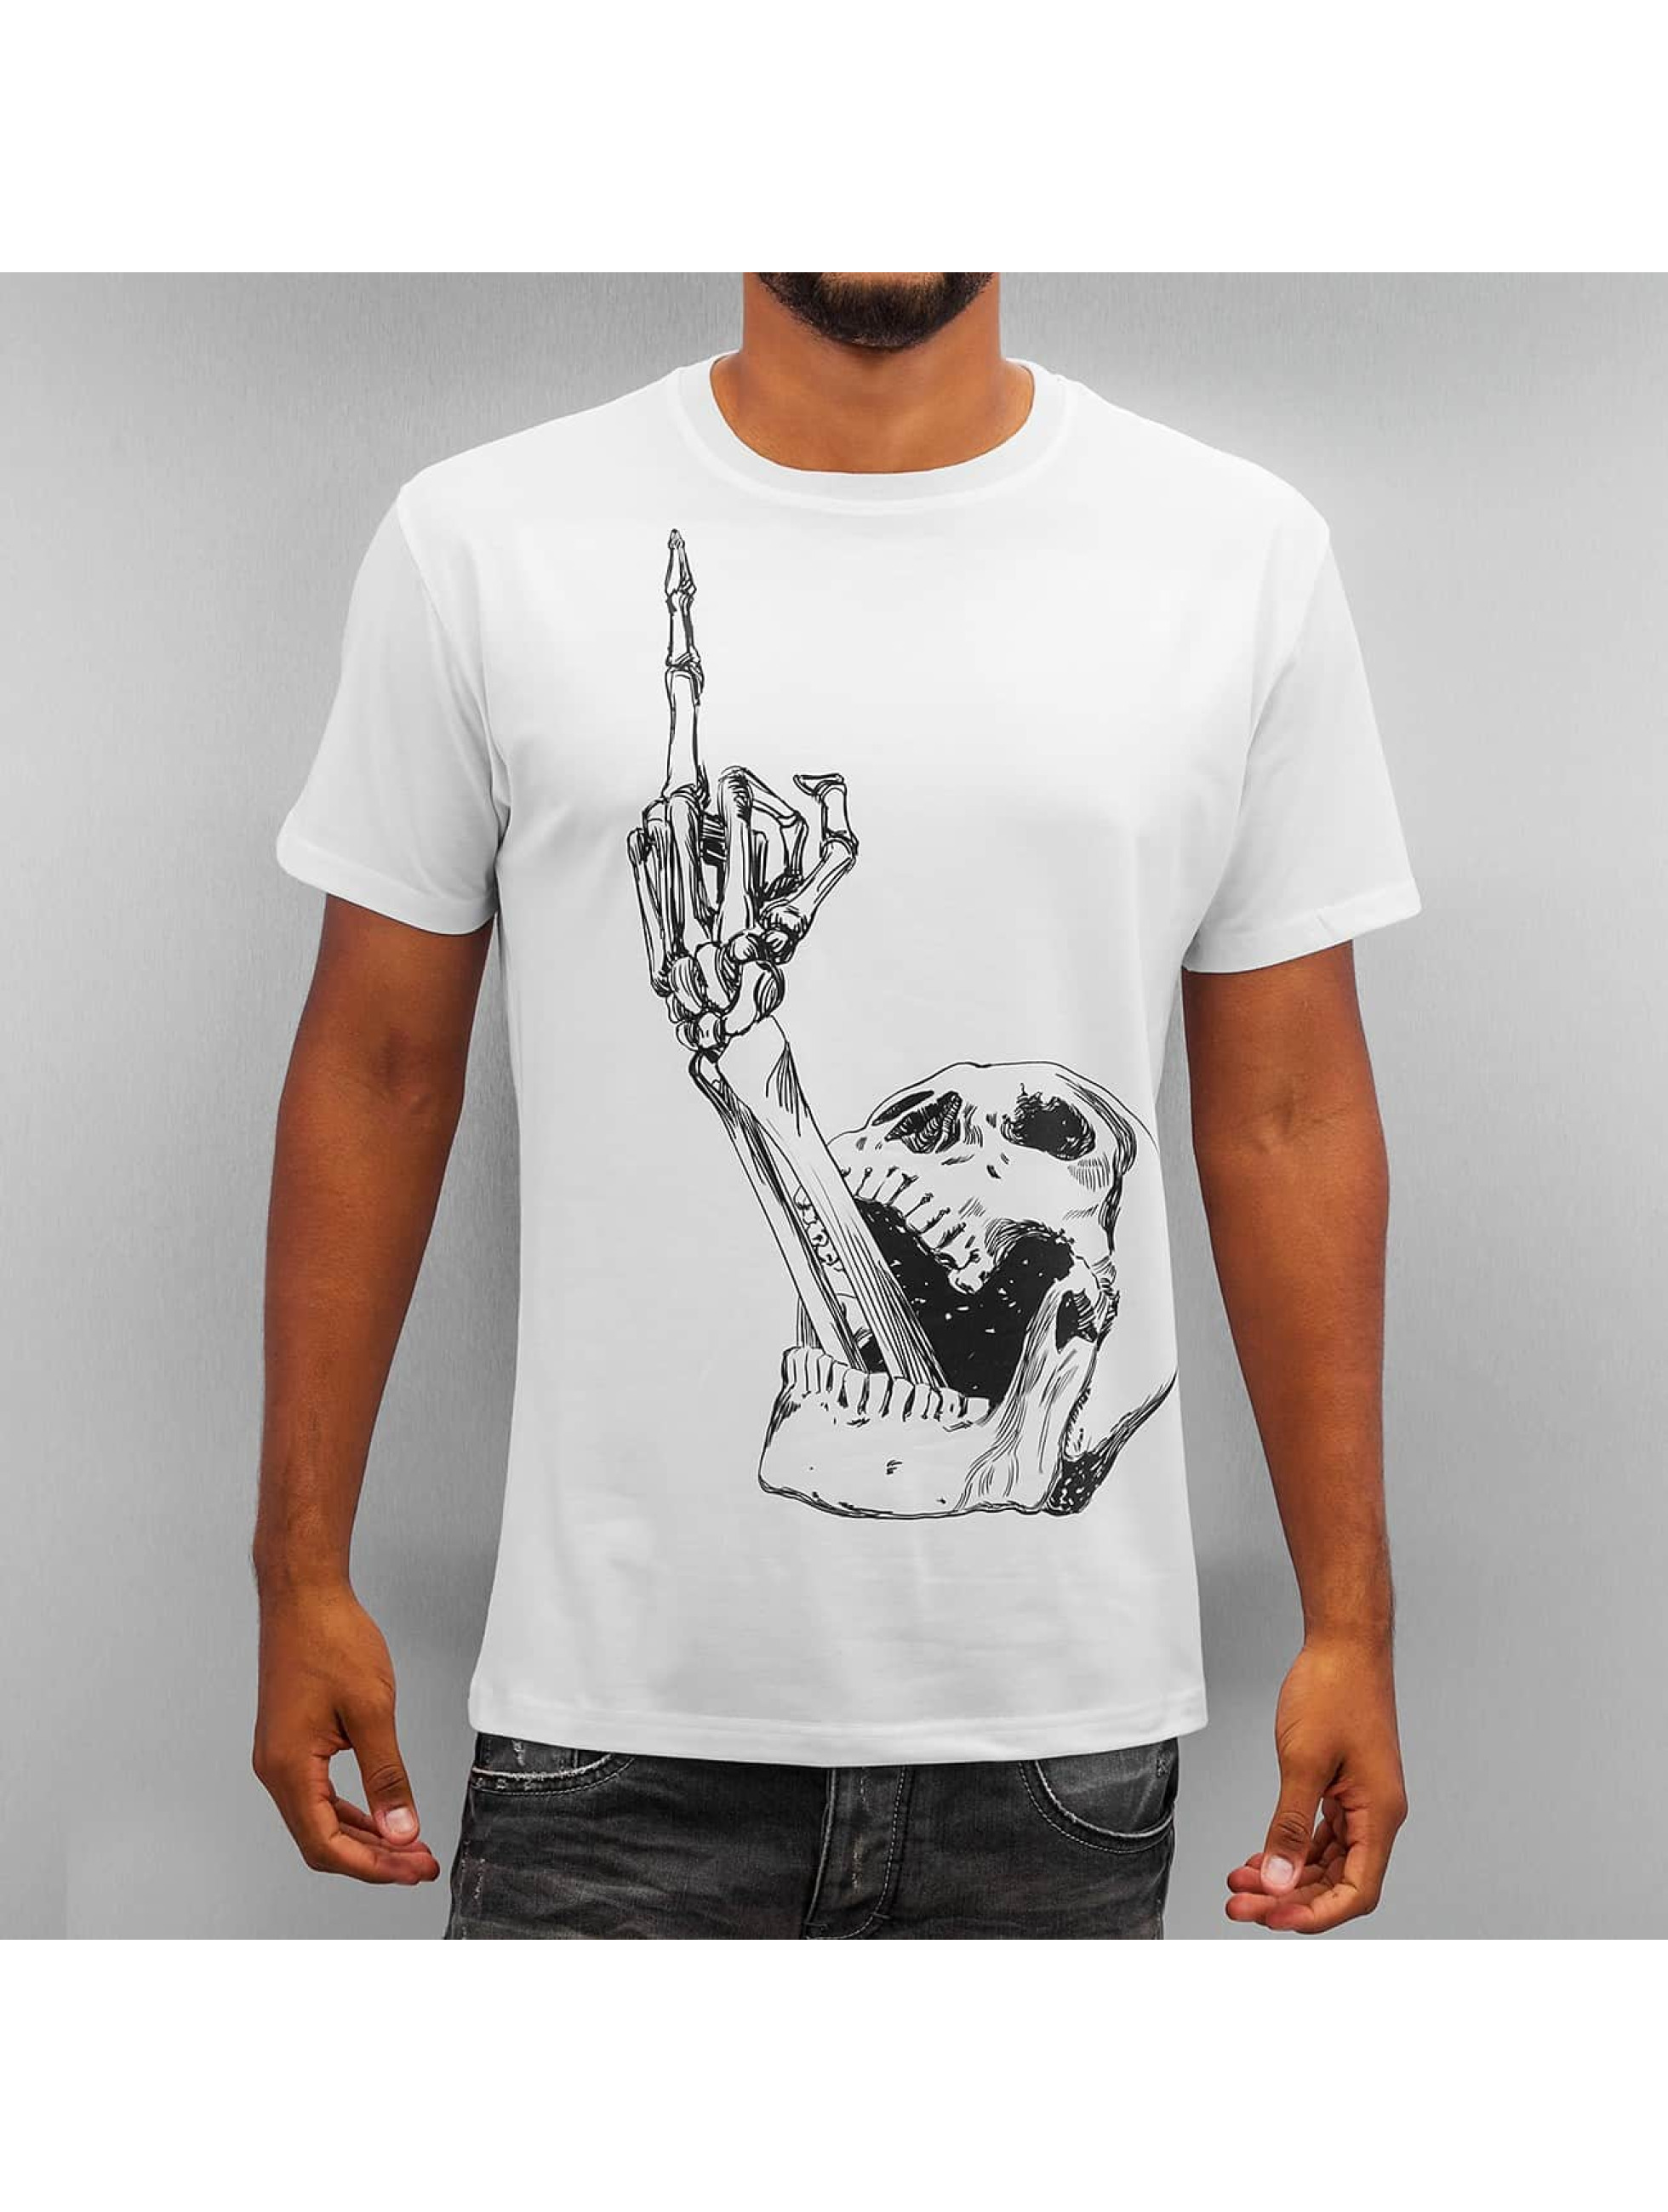 Monkey Business Männer T-Shirt Skull Finger in weiß